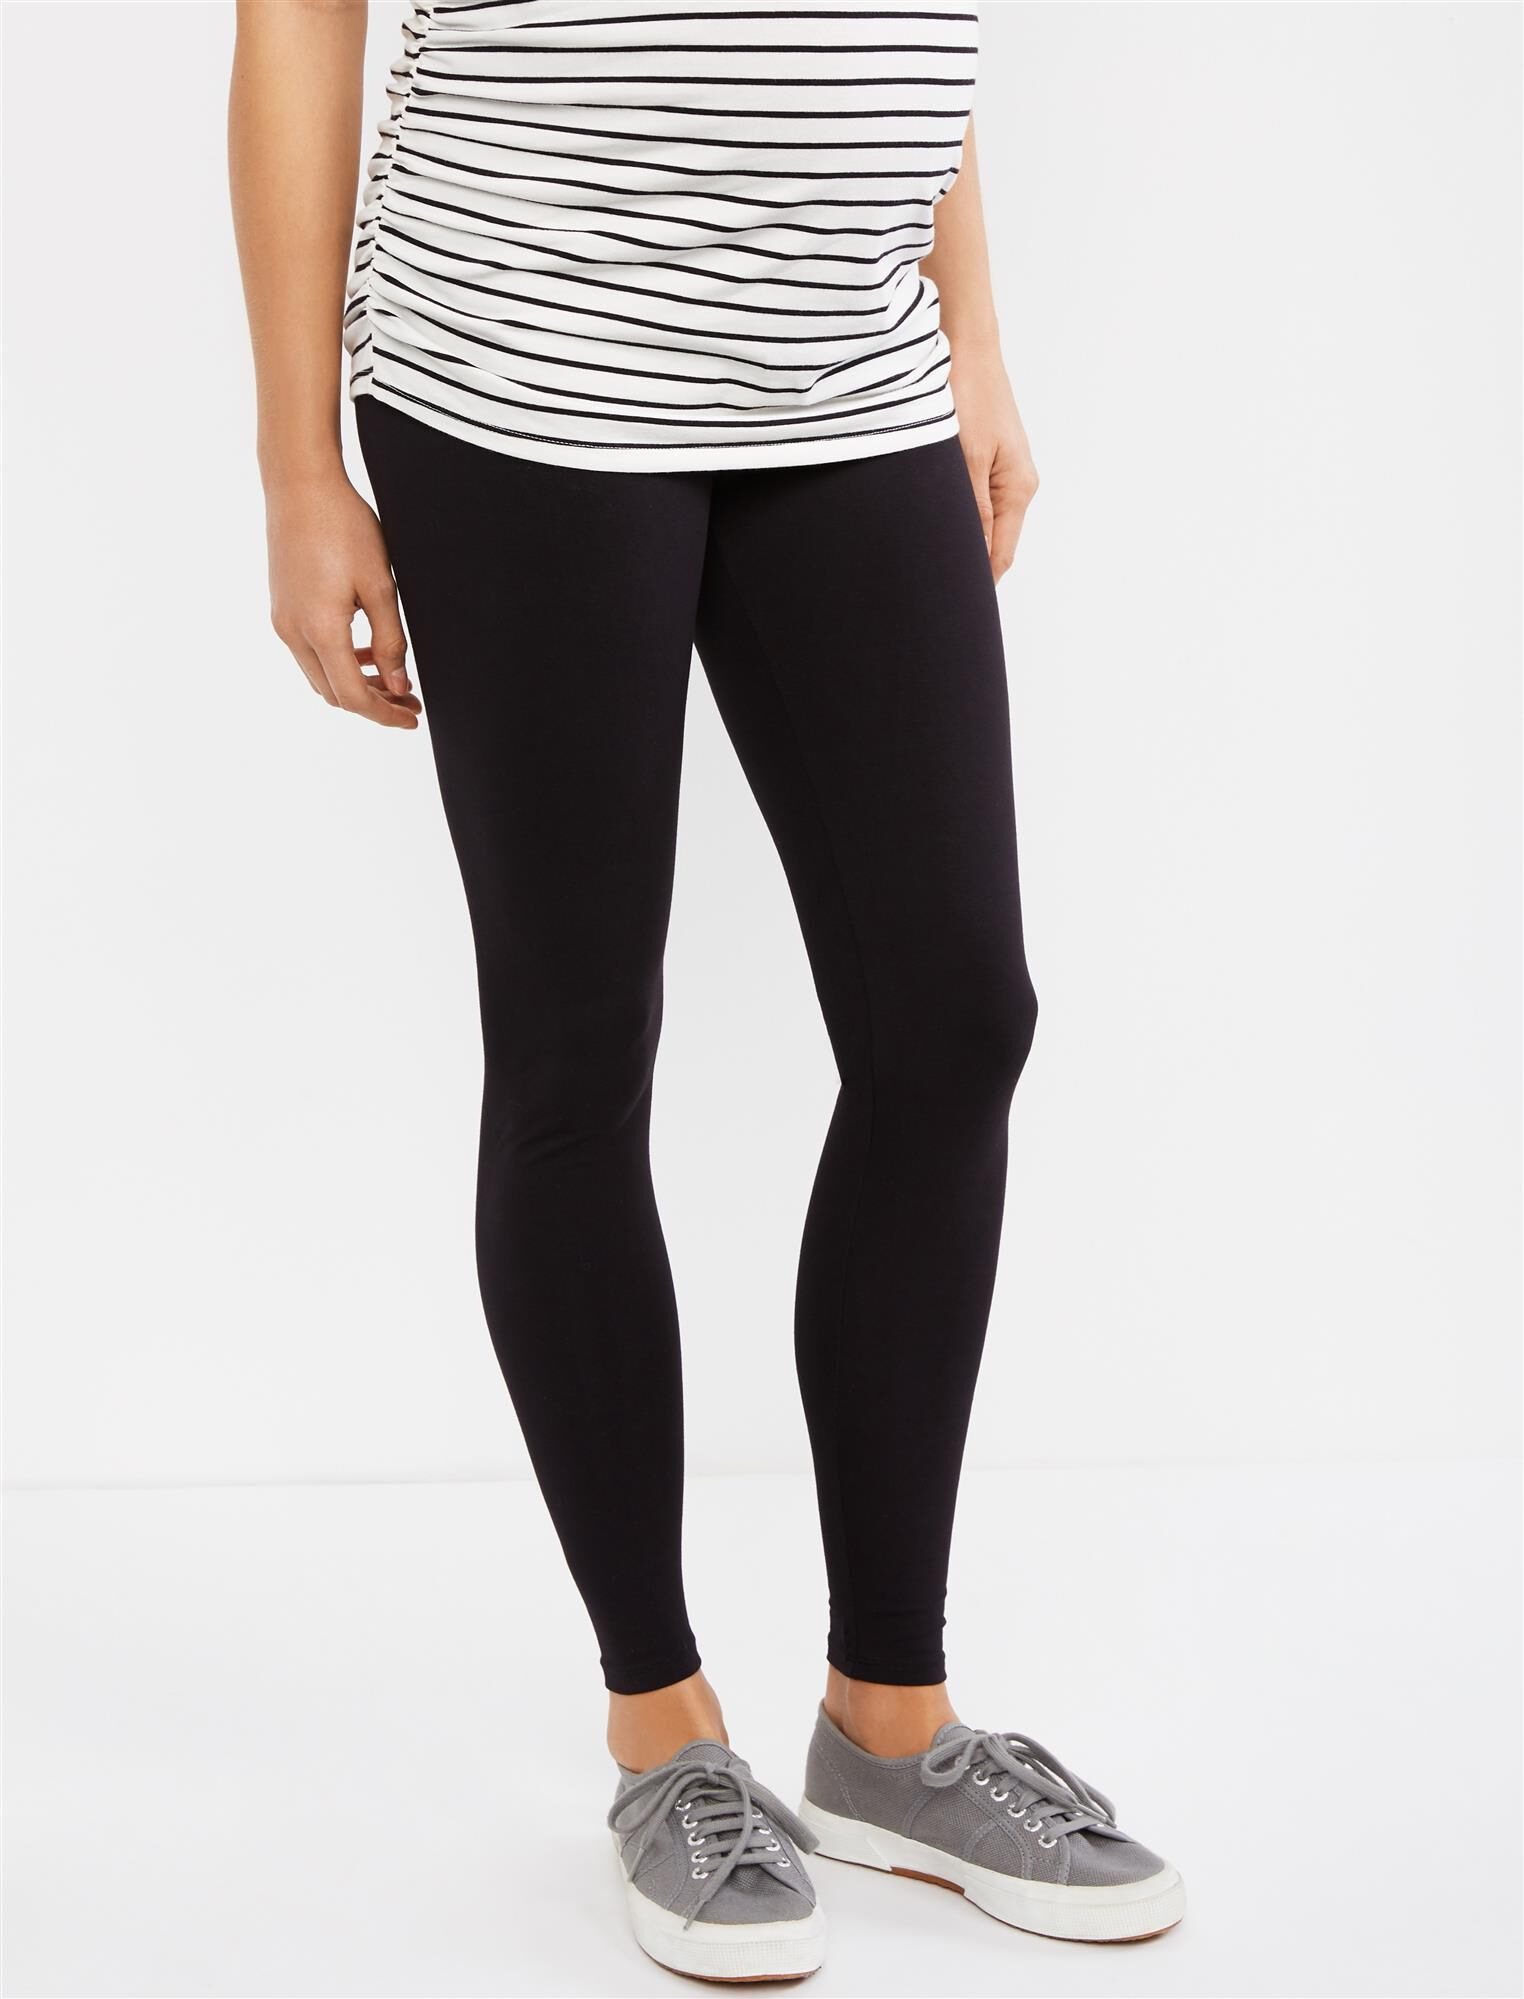 Secret Fit Belly Maternity Leggings- Solid